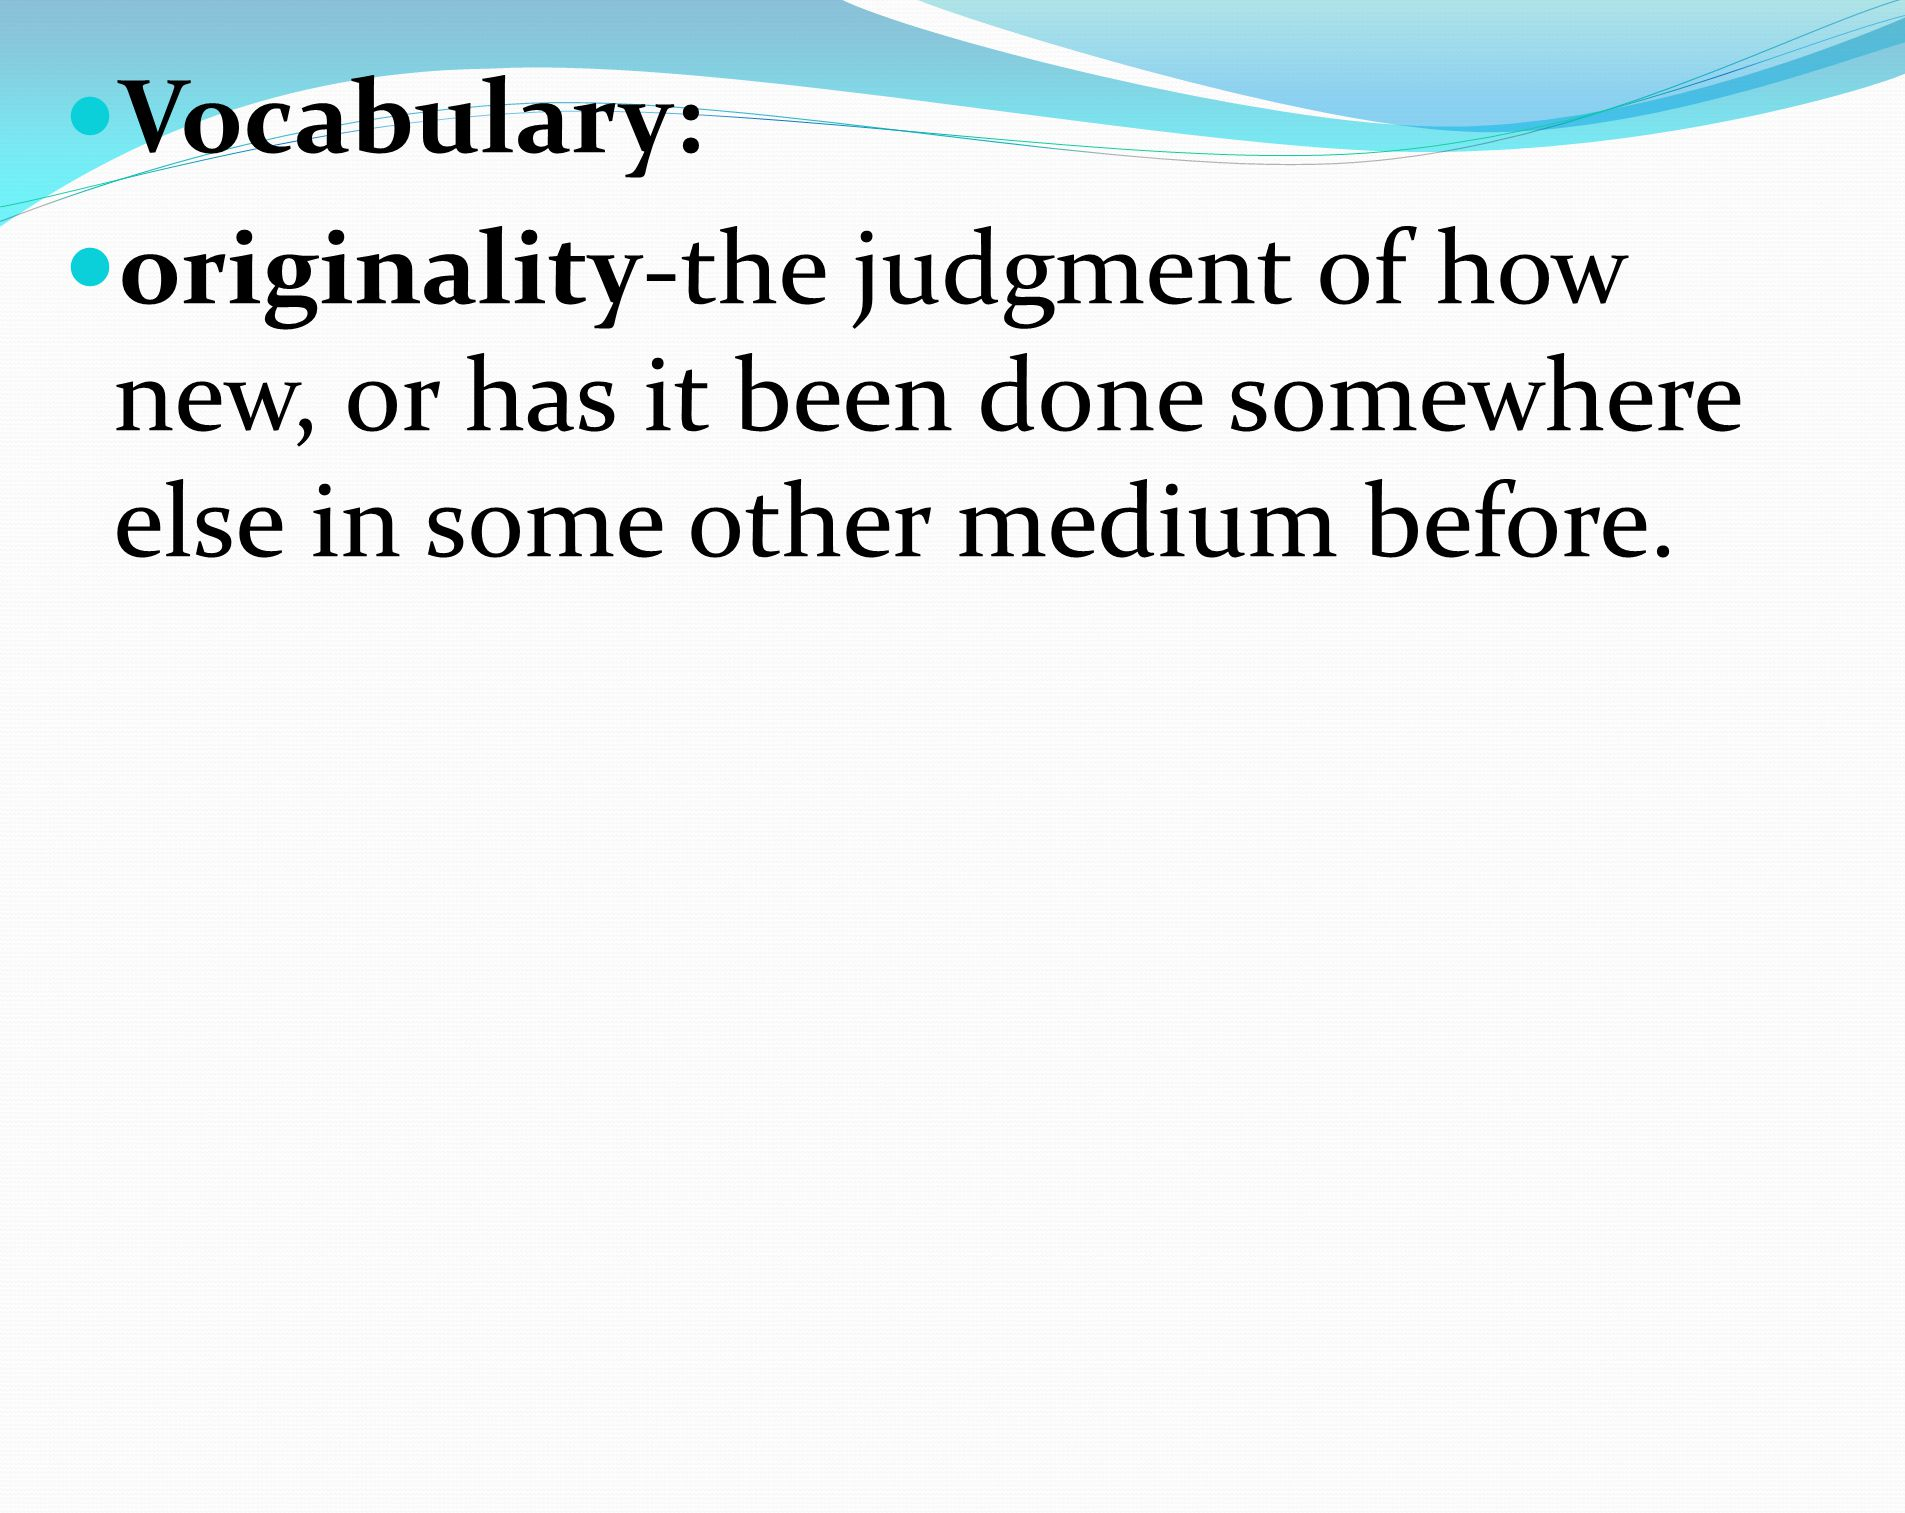 Vocabulary: originality-the judgment of how new, or has it been done somewhere else in some other medium before.